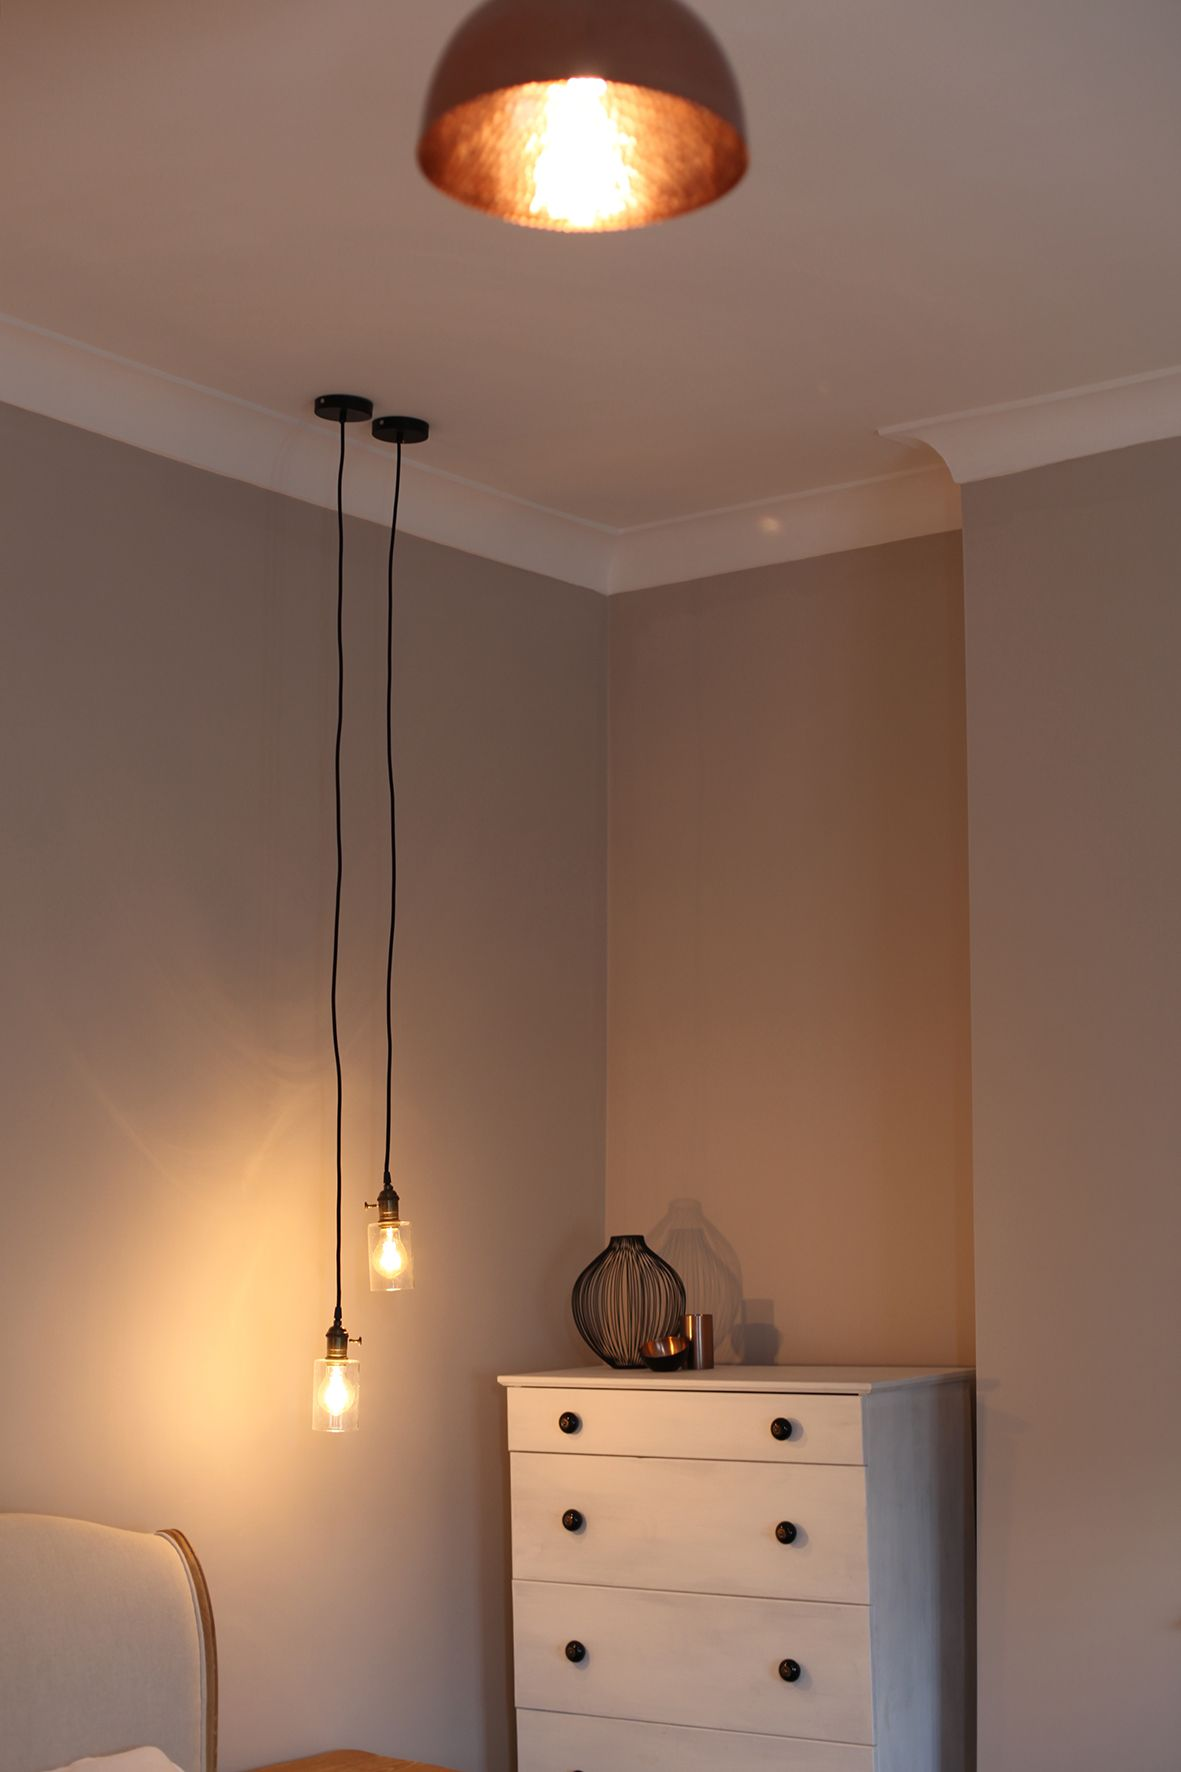 Rum Caramel 5 Dulux works well with the #copper lighting in this ...